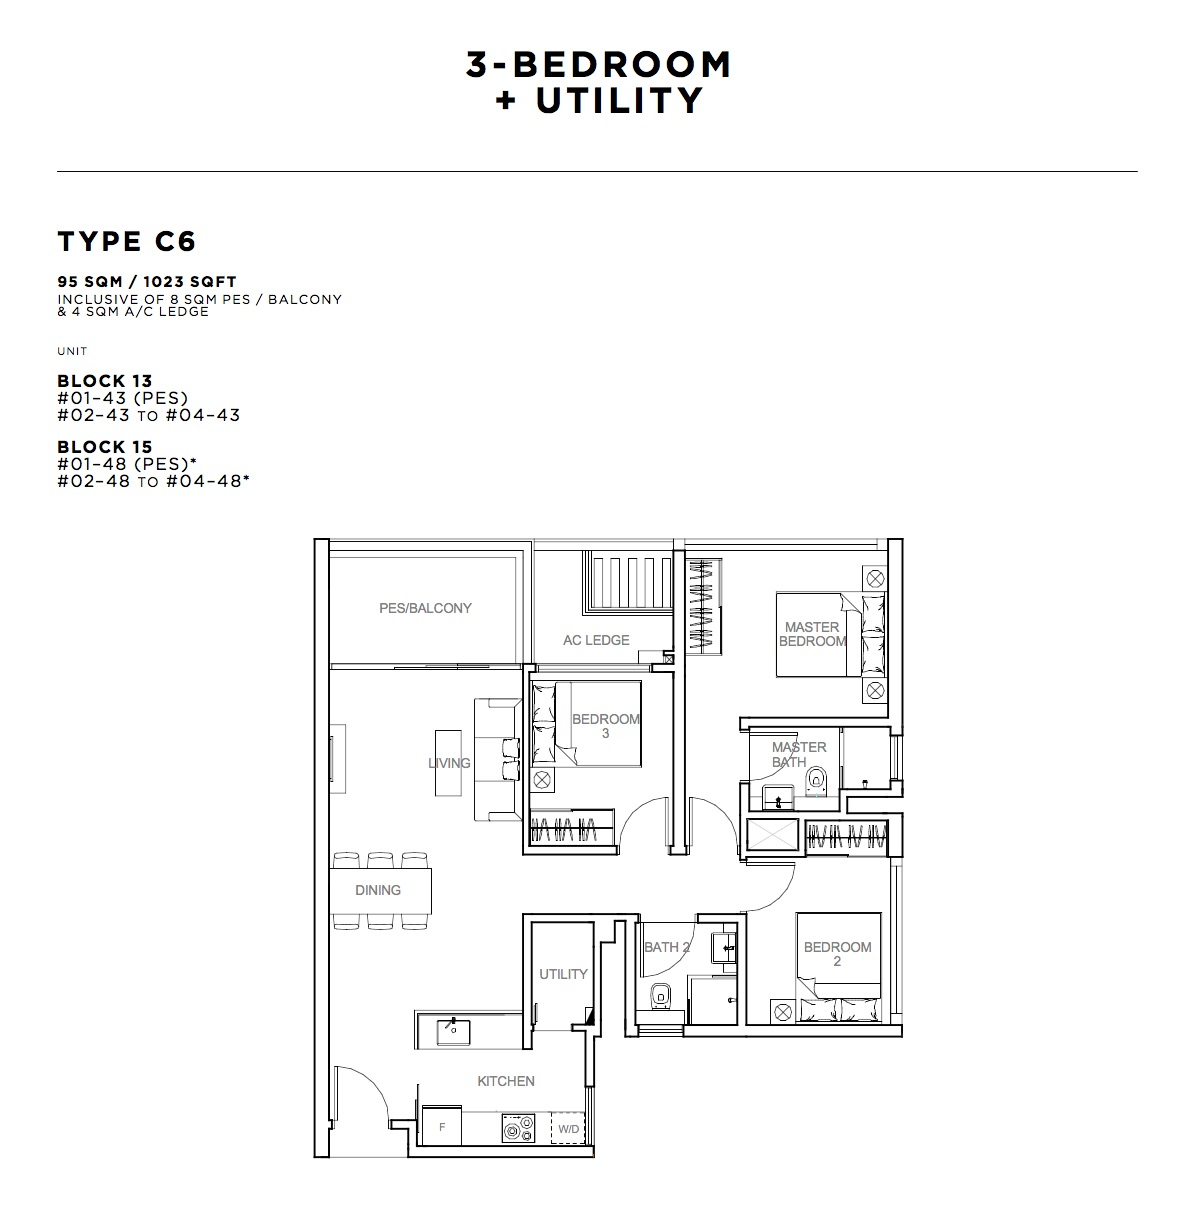 how much are utilities for a 3 bedroom apartment 28